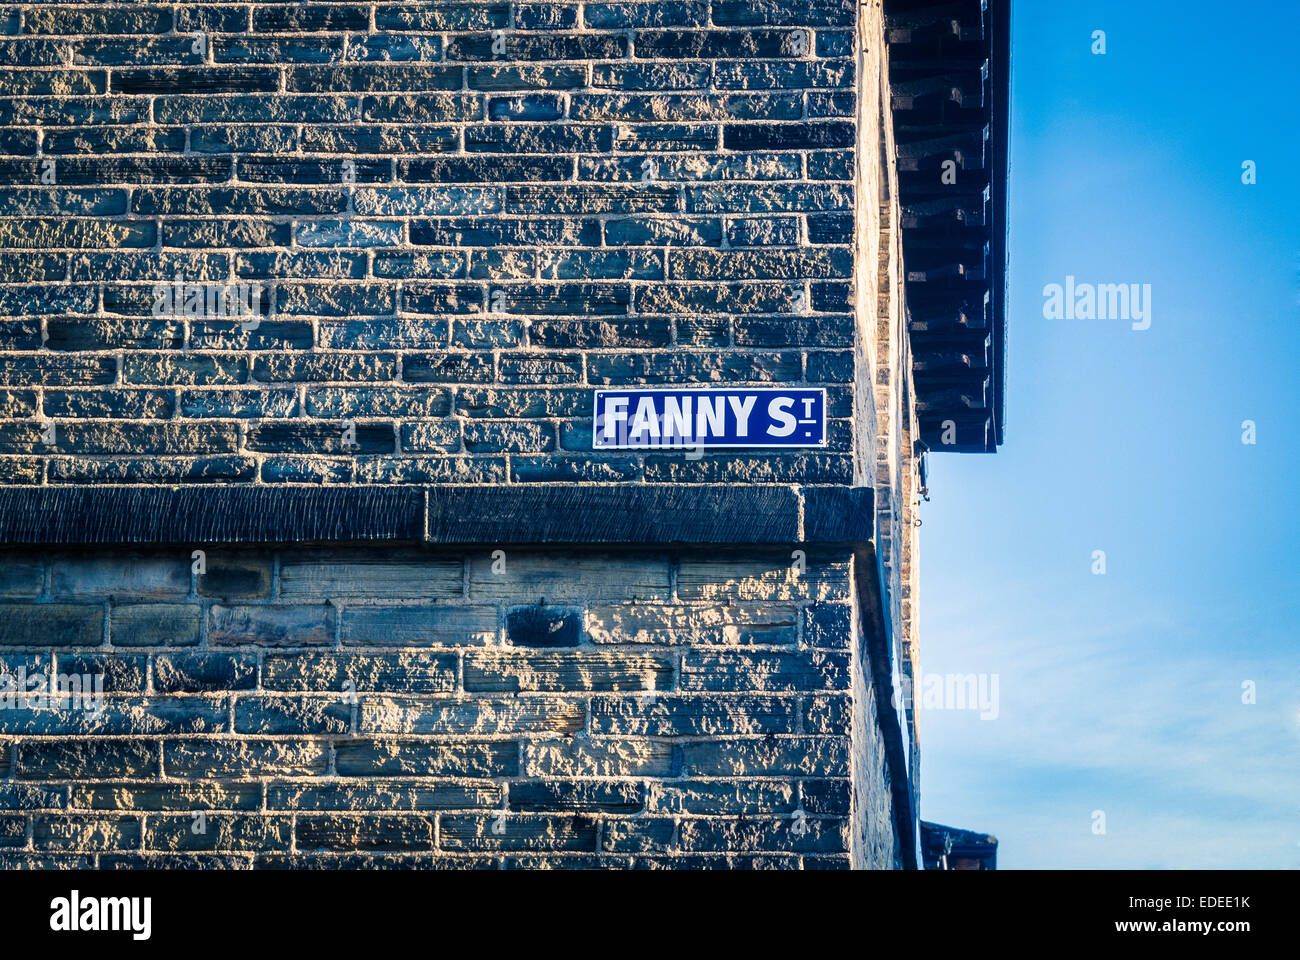 Fanny Street sign, Saltaire, West Yorkshire,  UK. - Stock Image